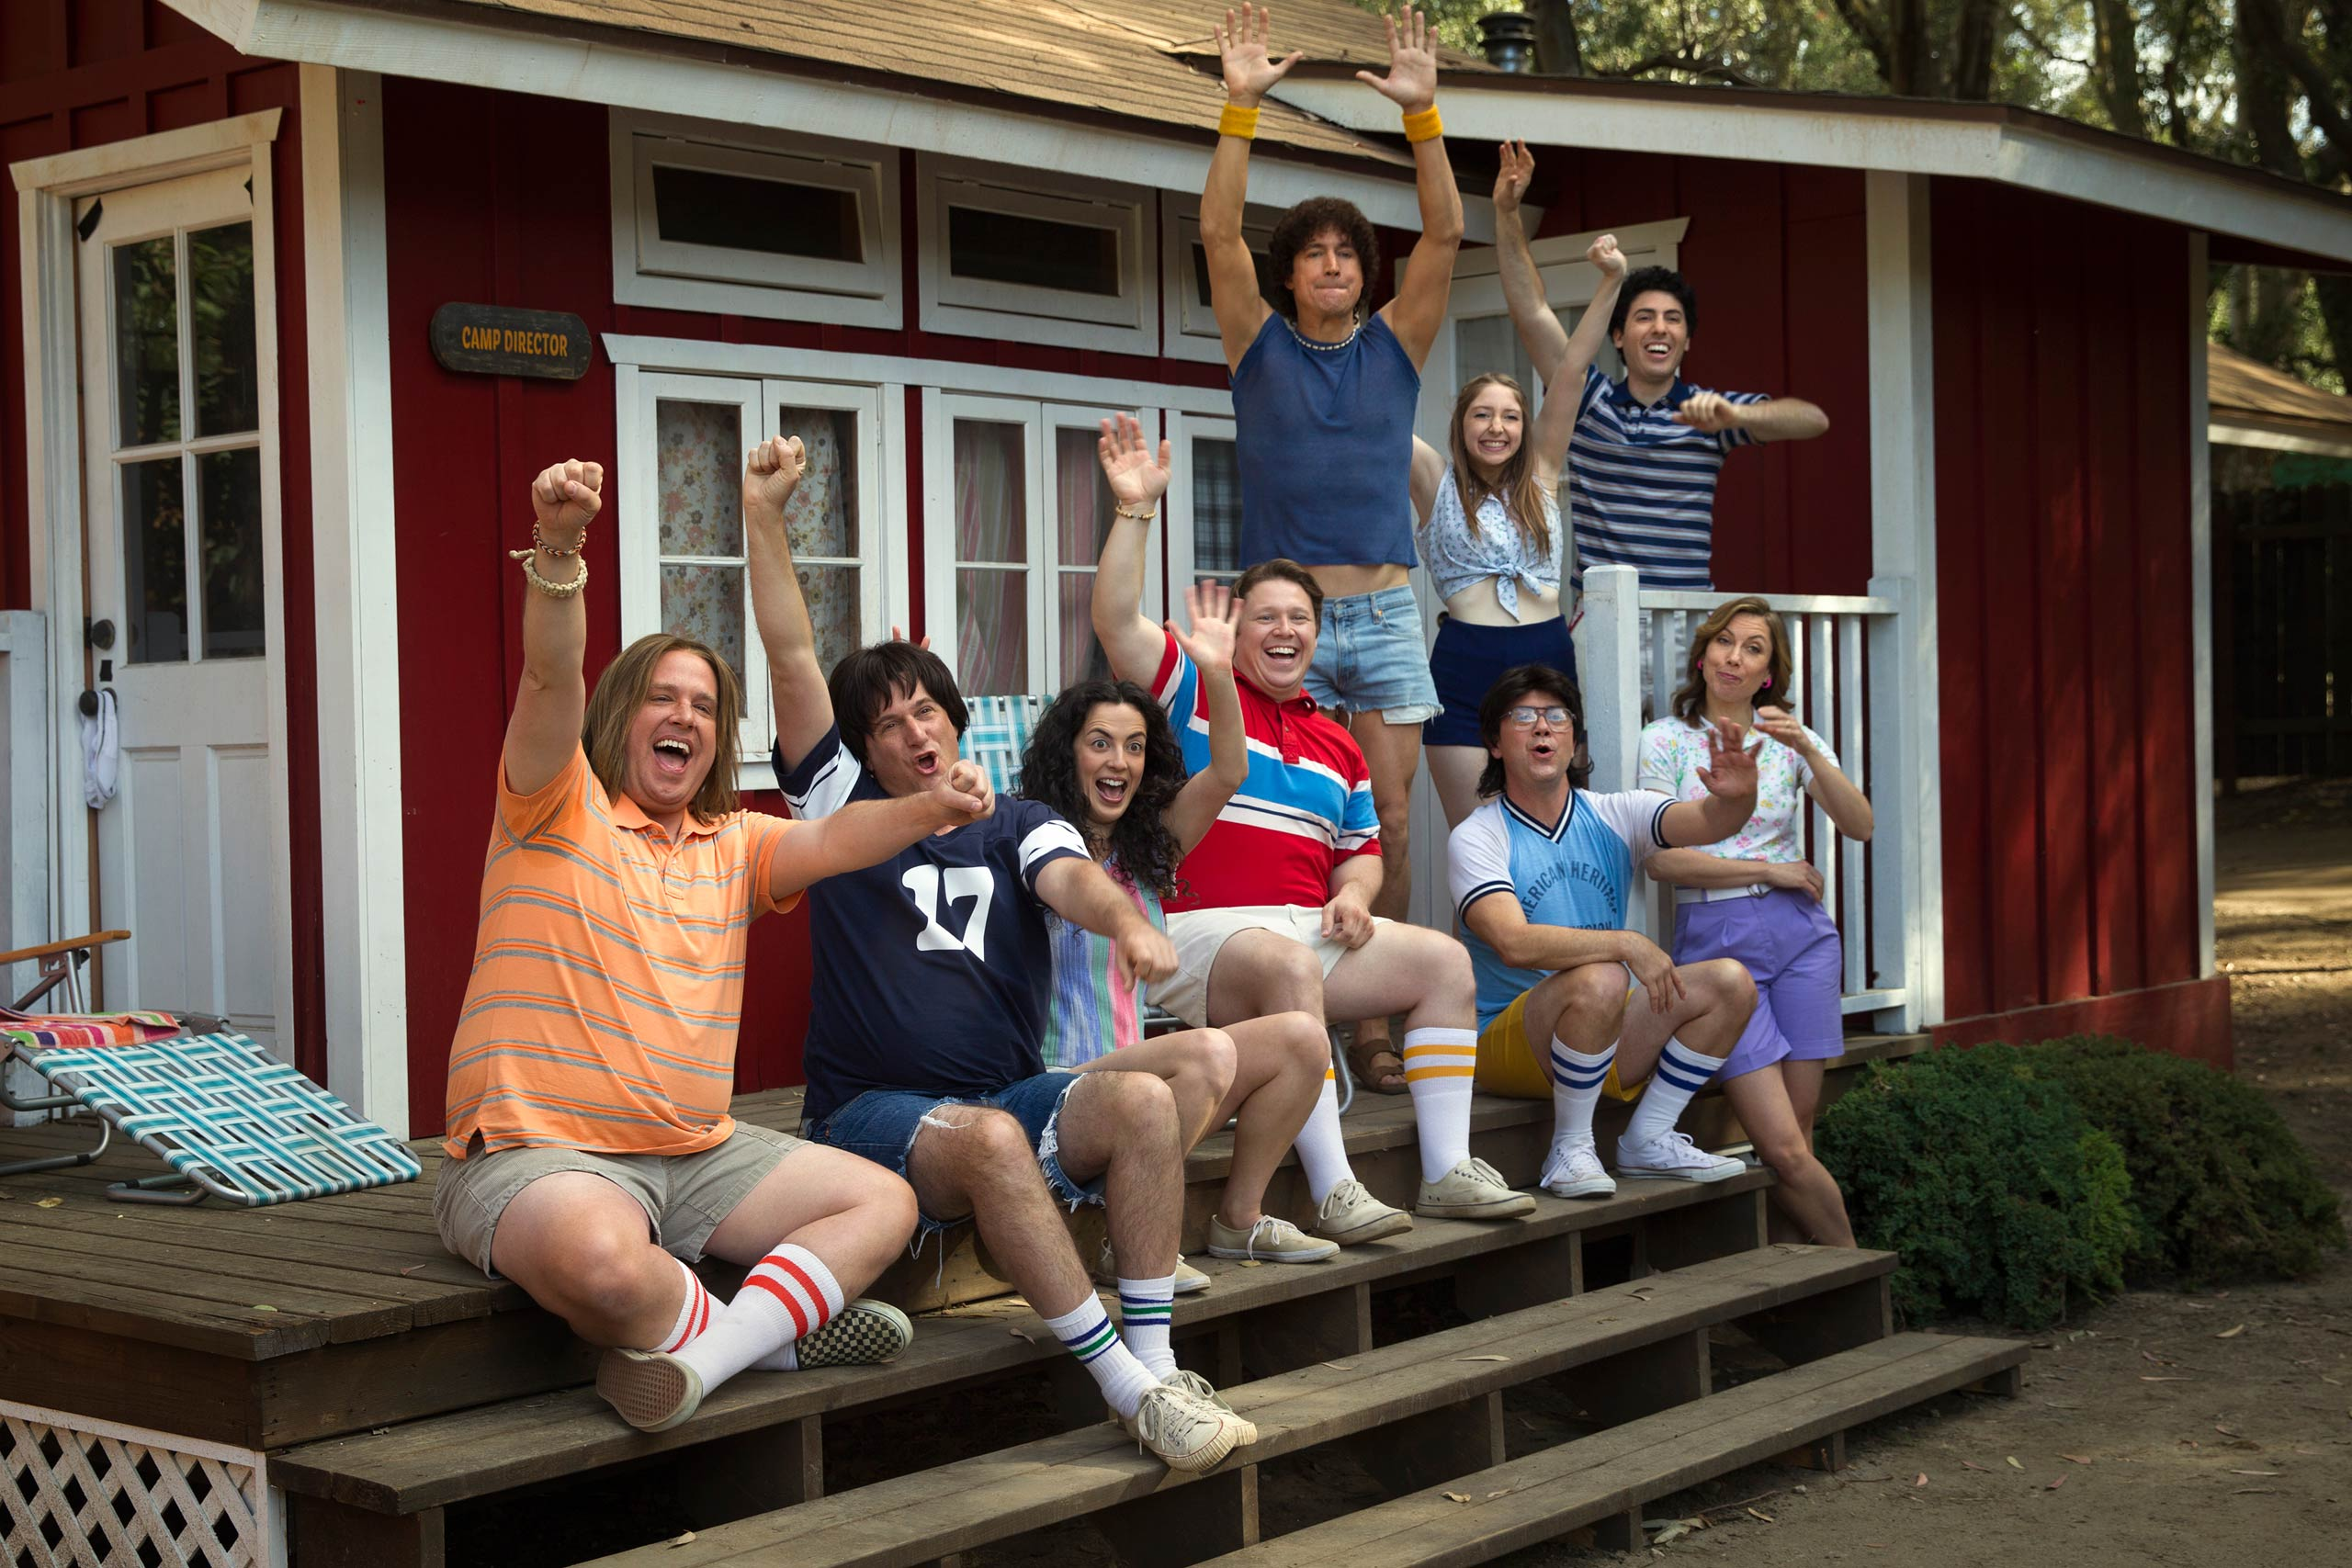 From left: Zak Orth, Michael Showalter, Ken Marino, Joe Lo Truglio and Nina Hellman in <i>Wet Hot American Summer: First Day Of Camp</i>